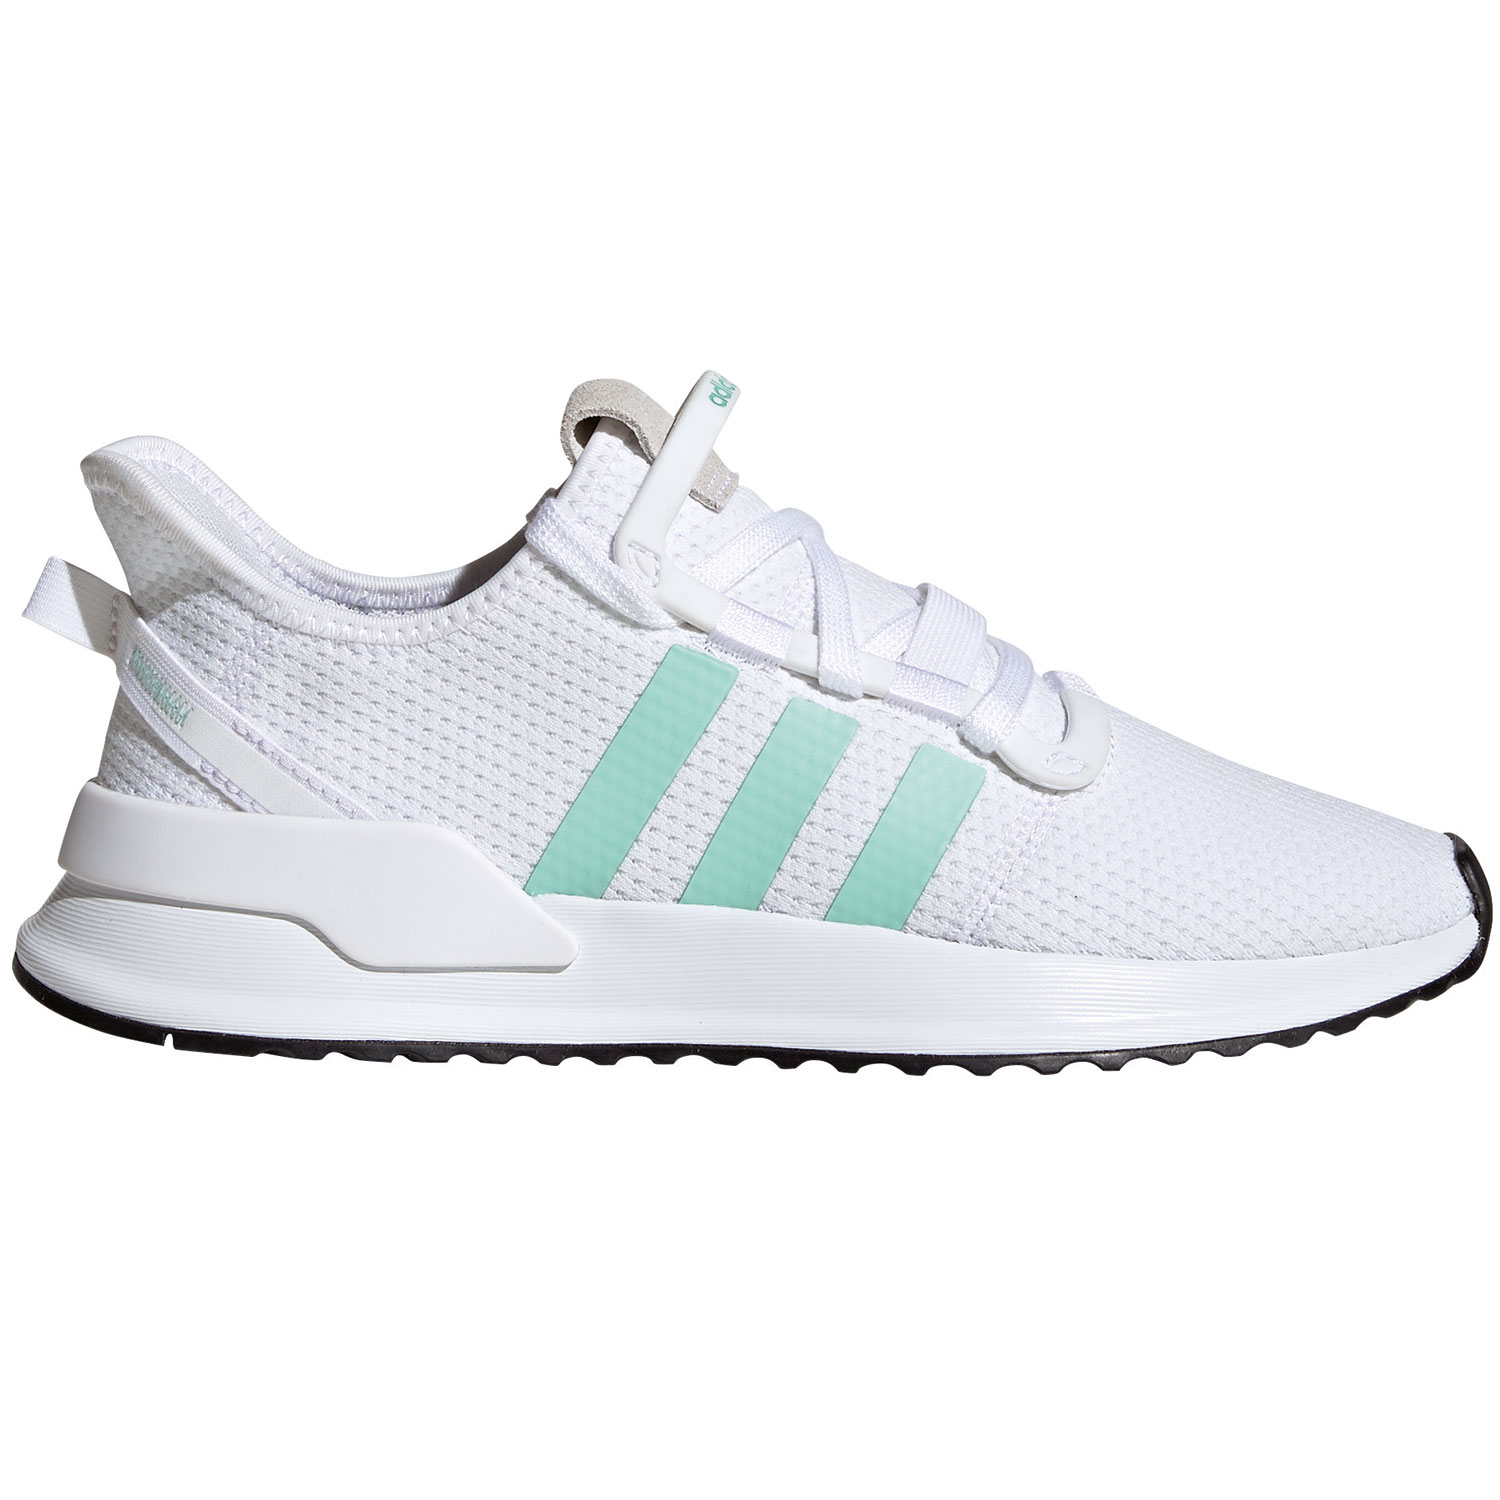 adidas Originals U_Path Run W Damen Sneaker weiß mint G27649